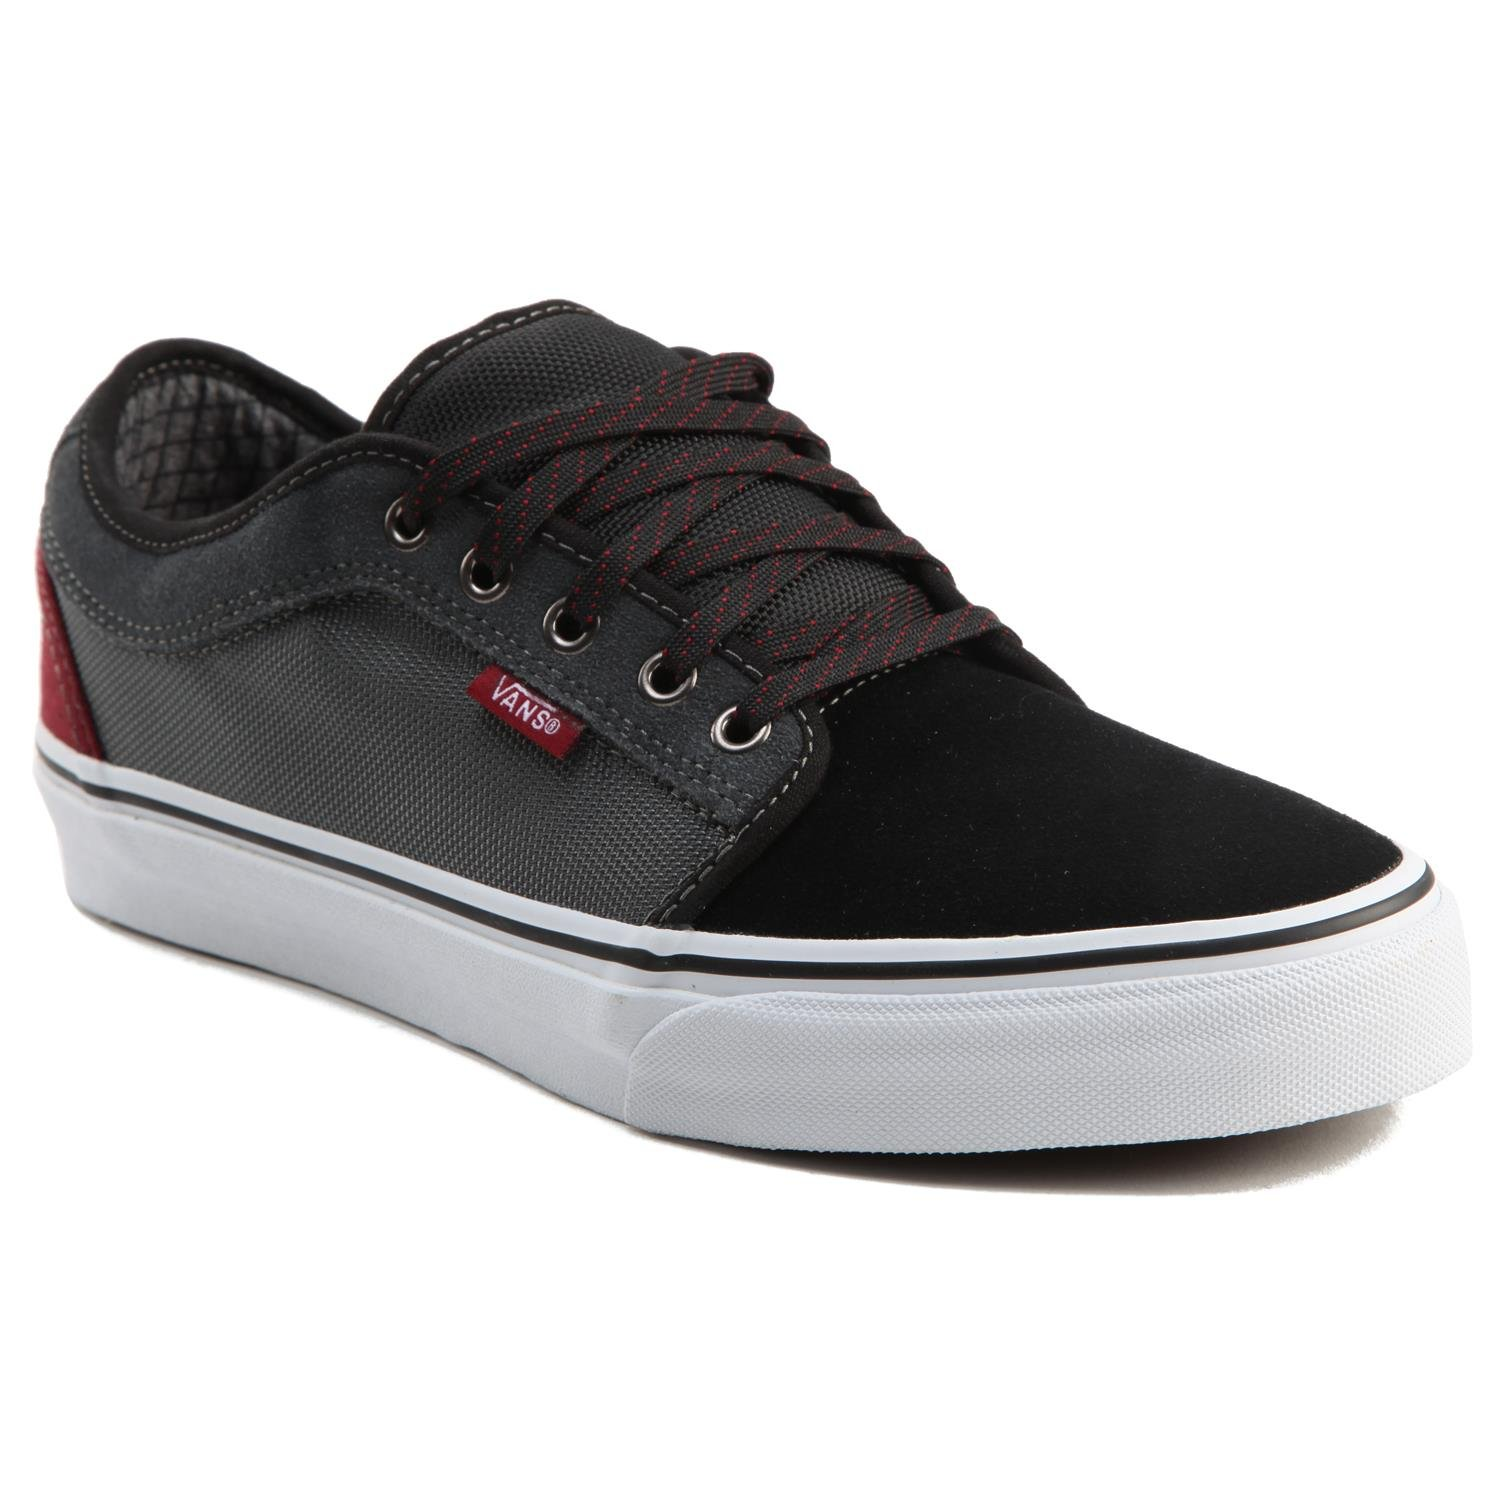 Chukka Low Vans Shoes For Sale